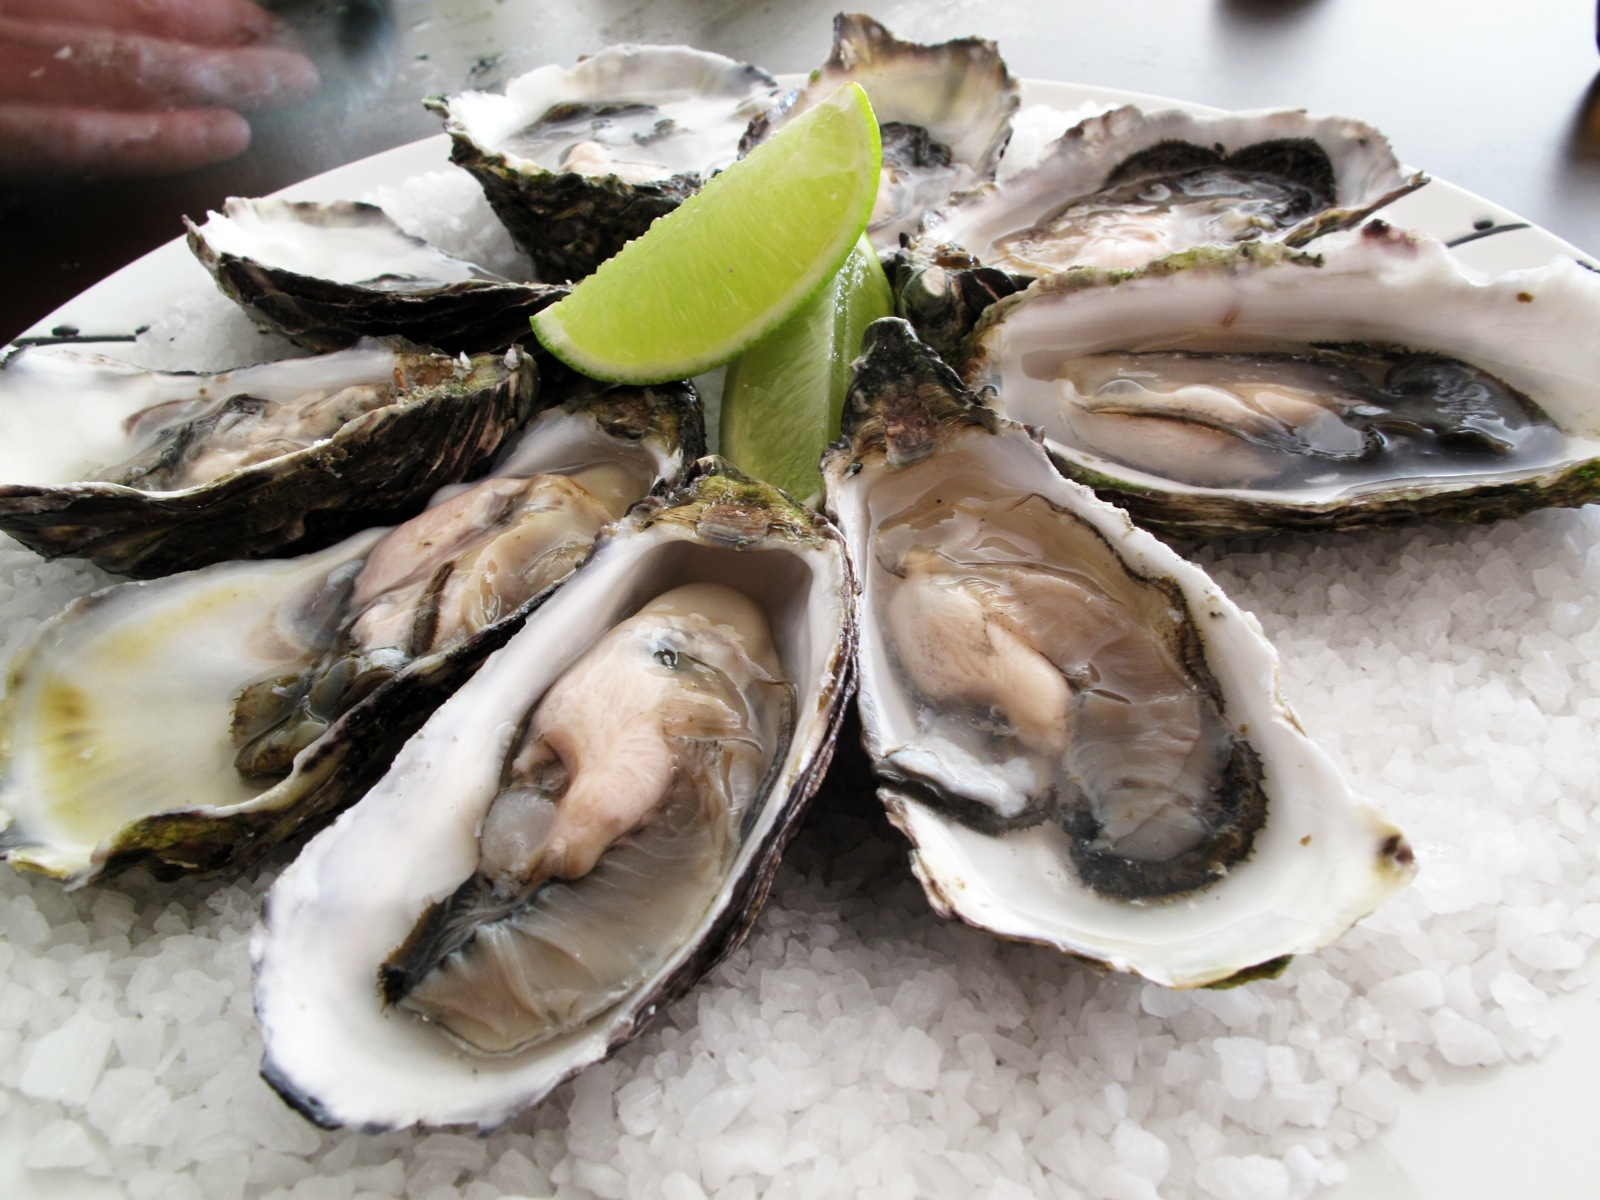 http://upload.wikimedia.org/wikipedia/commons/8/80/Pacific_oysters.jpg